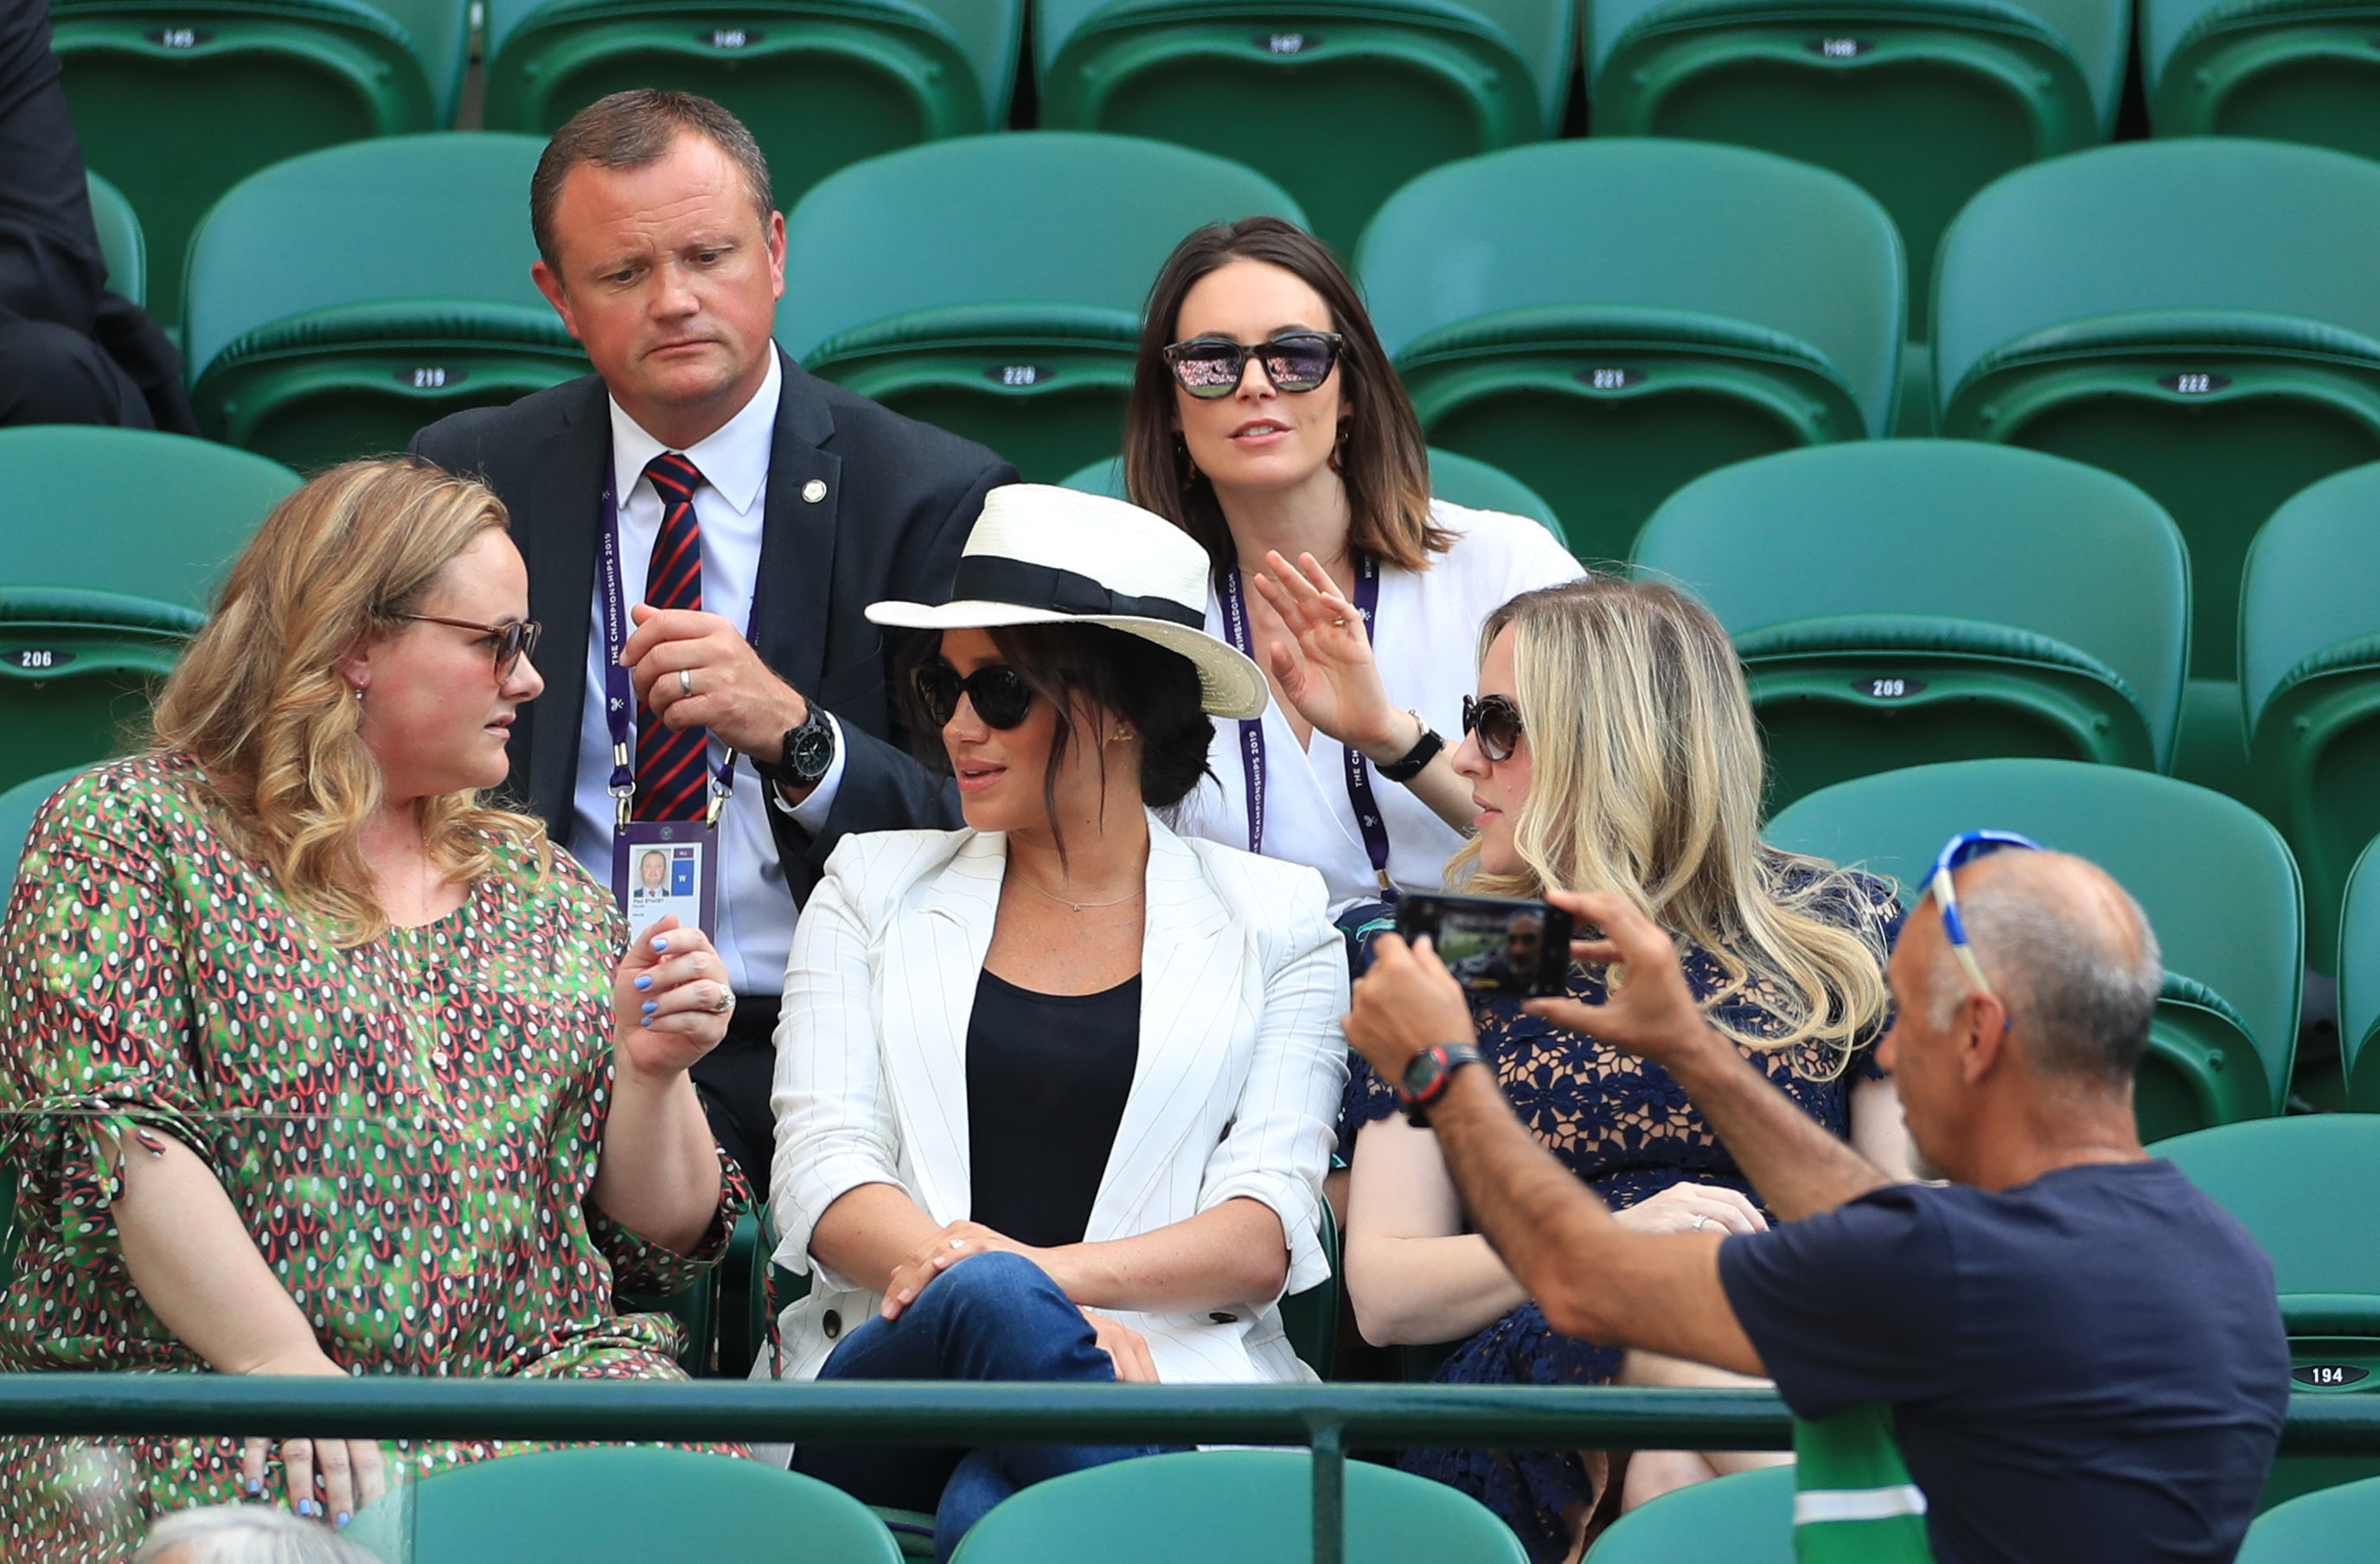 Meghan Markle, Kate Middleton Squash Feud Rumors With Wimbledon Outing